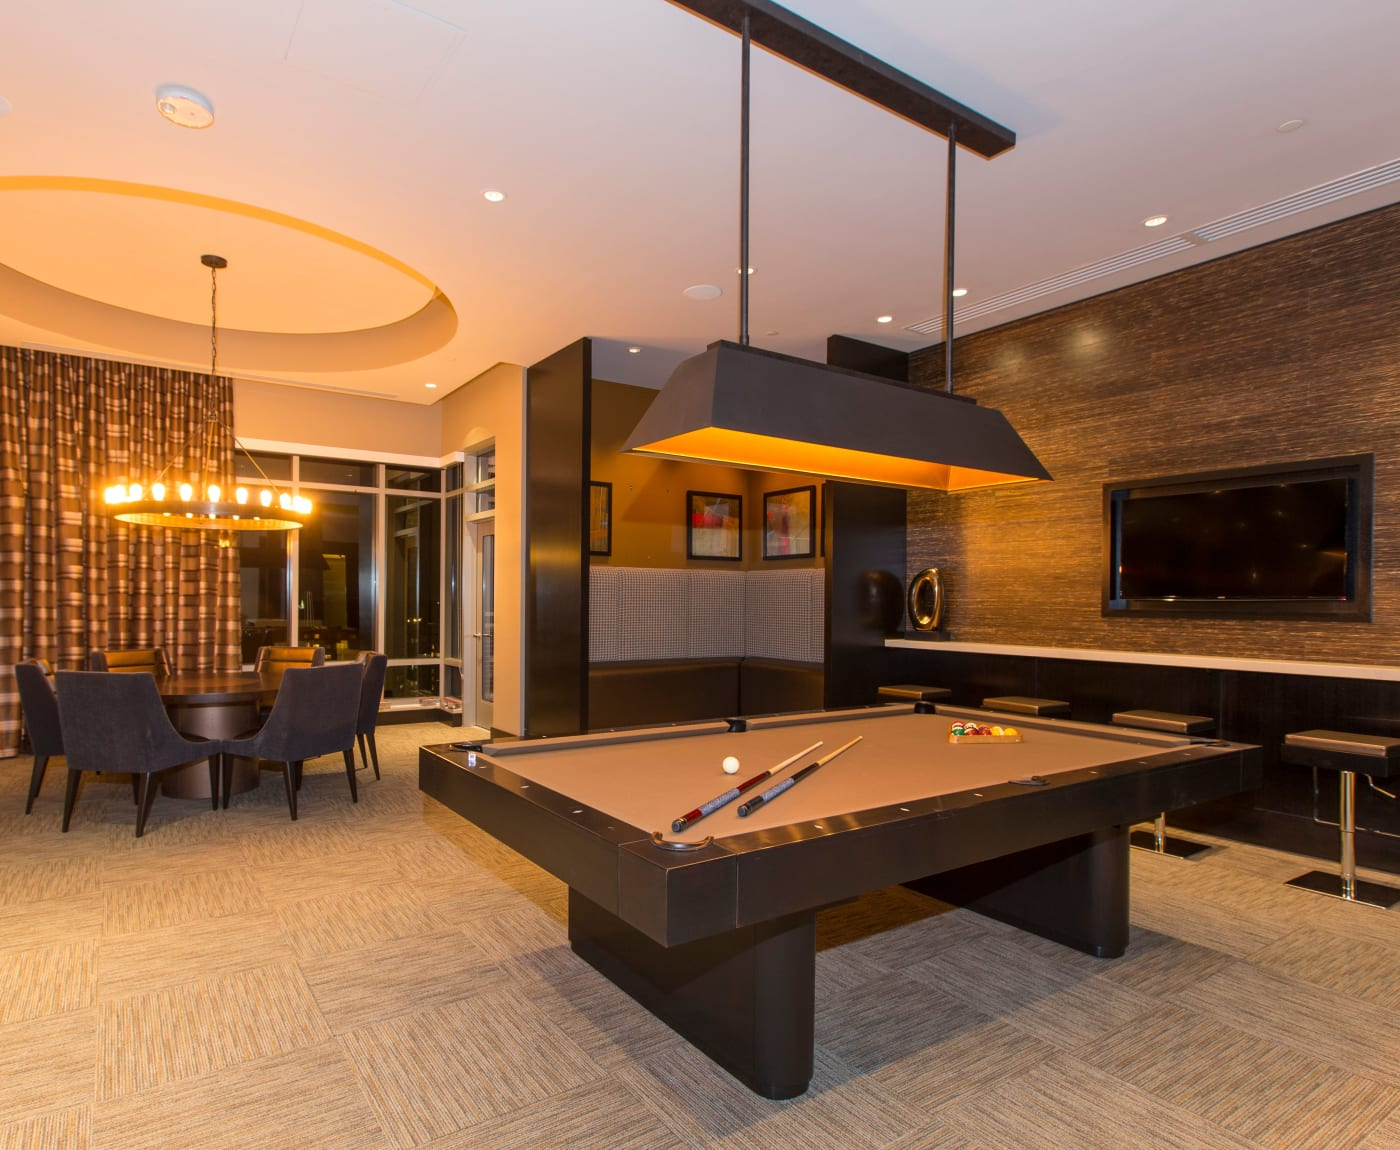 Gallery Bethesda II offers an impressive list of community amenities in Bethesda